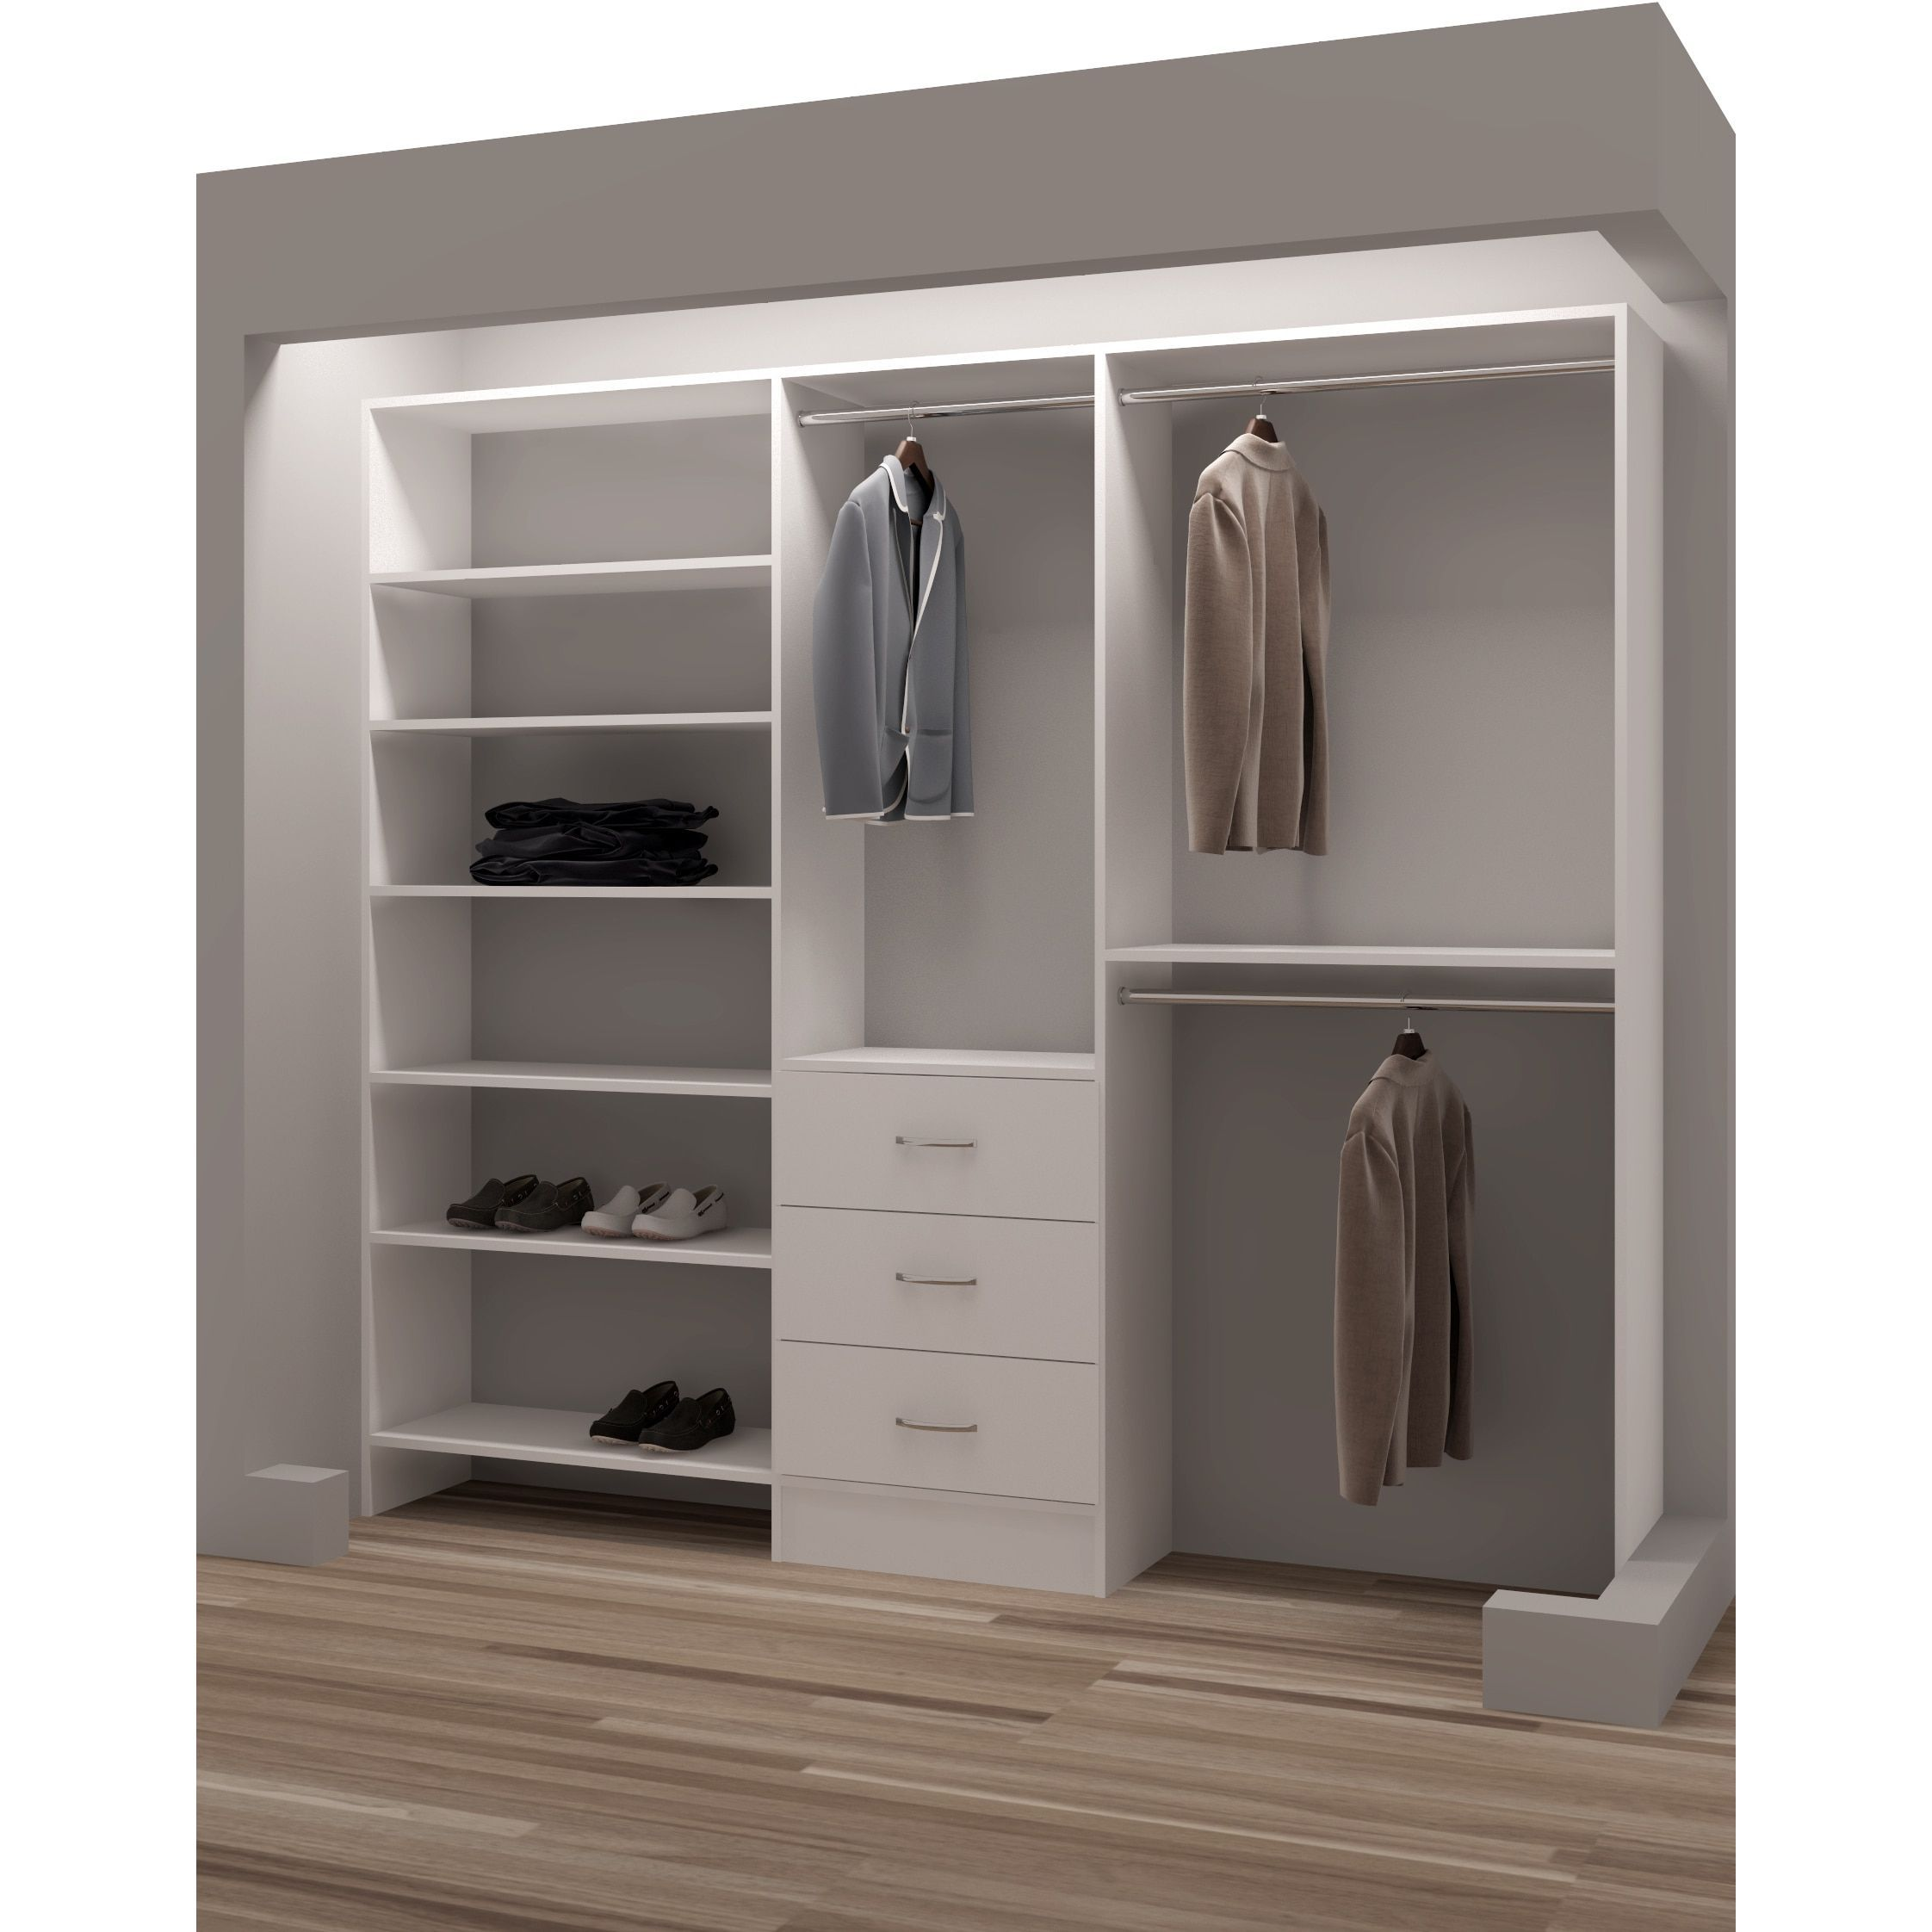 modern construction pure bedroom systems white awesome drawers laminated closet wood hang fascinating organizers organizer rods and doors badroom finish